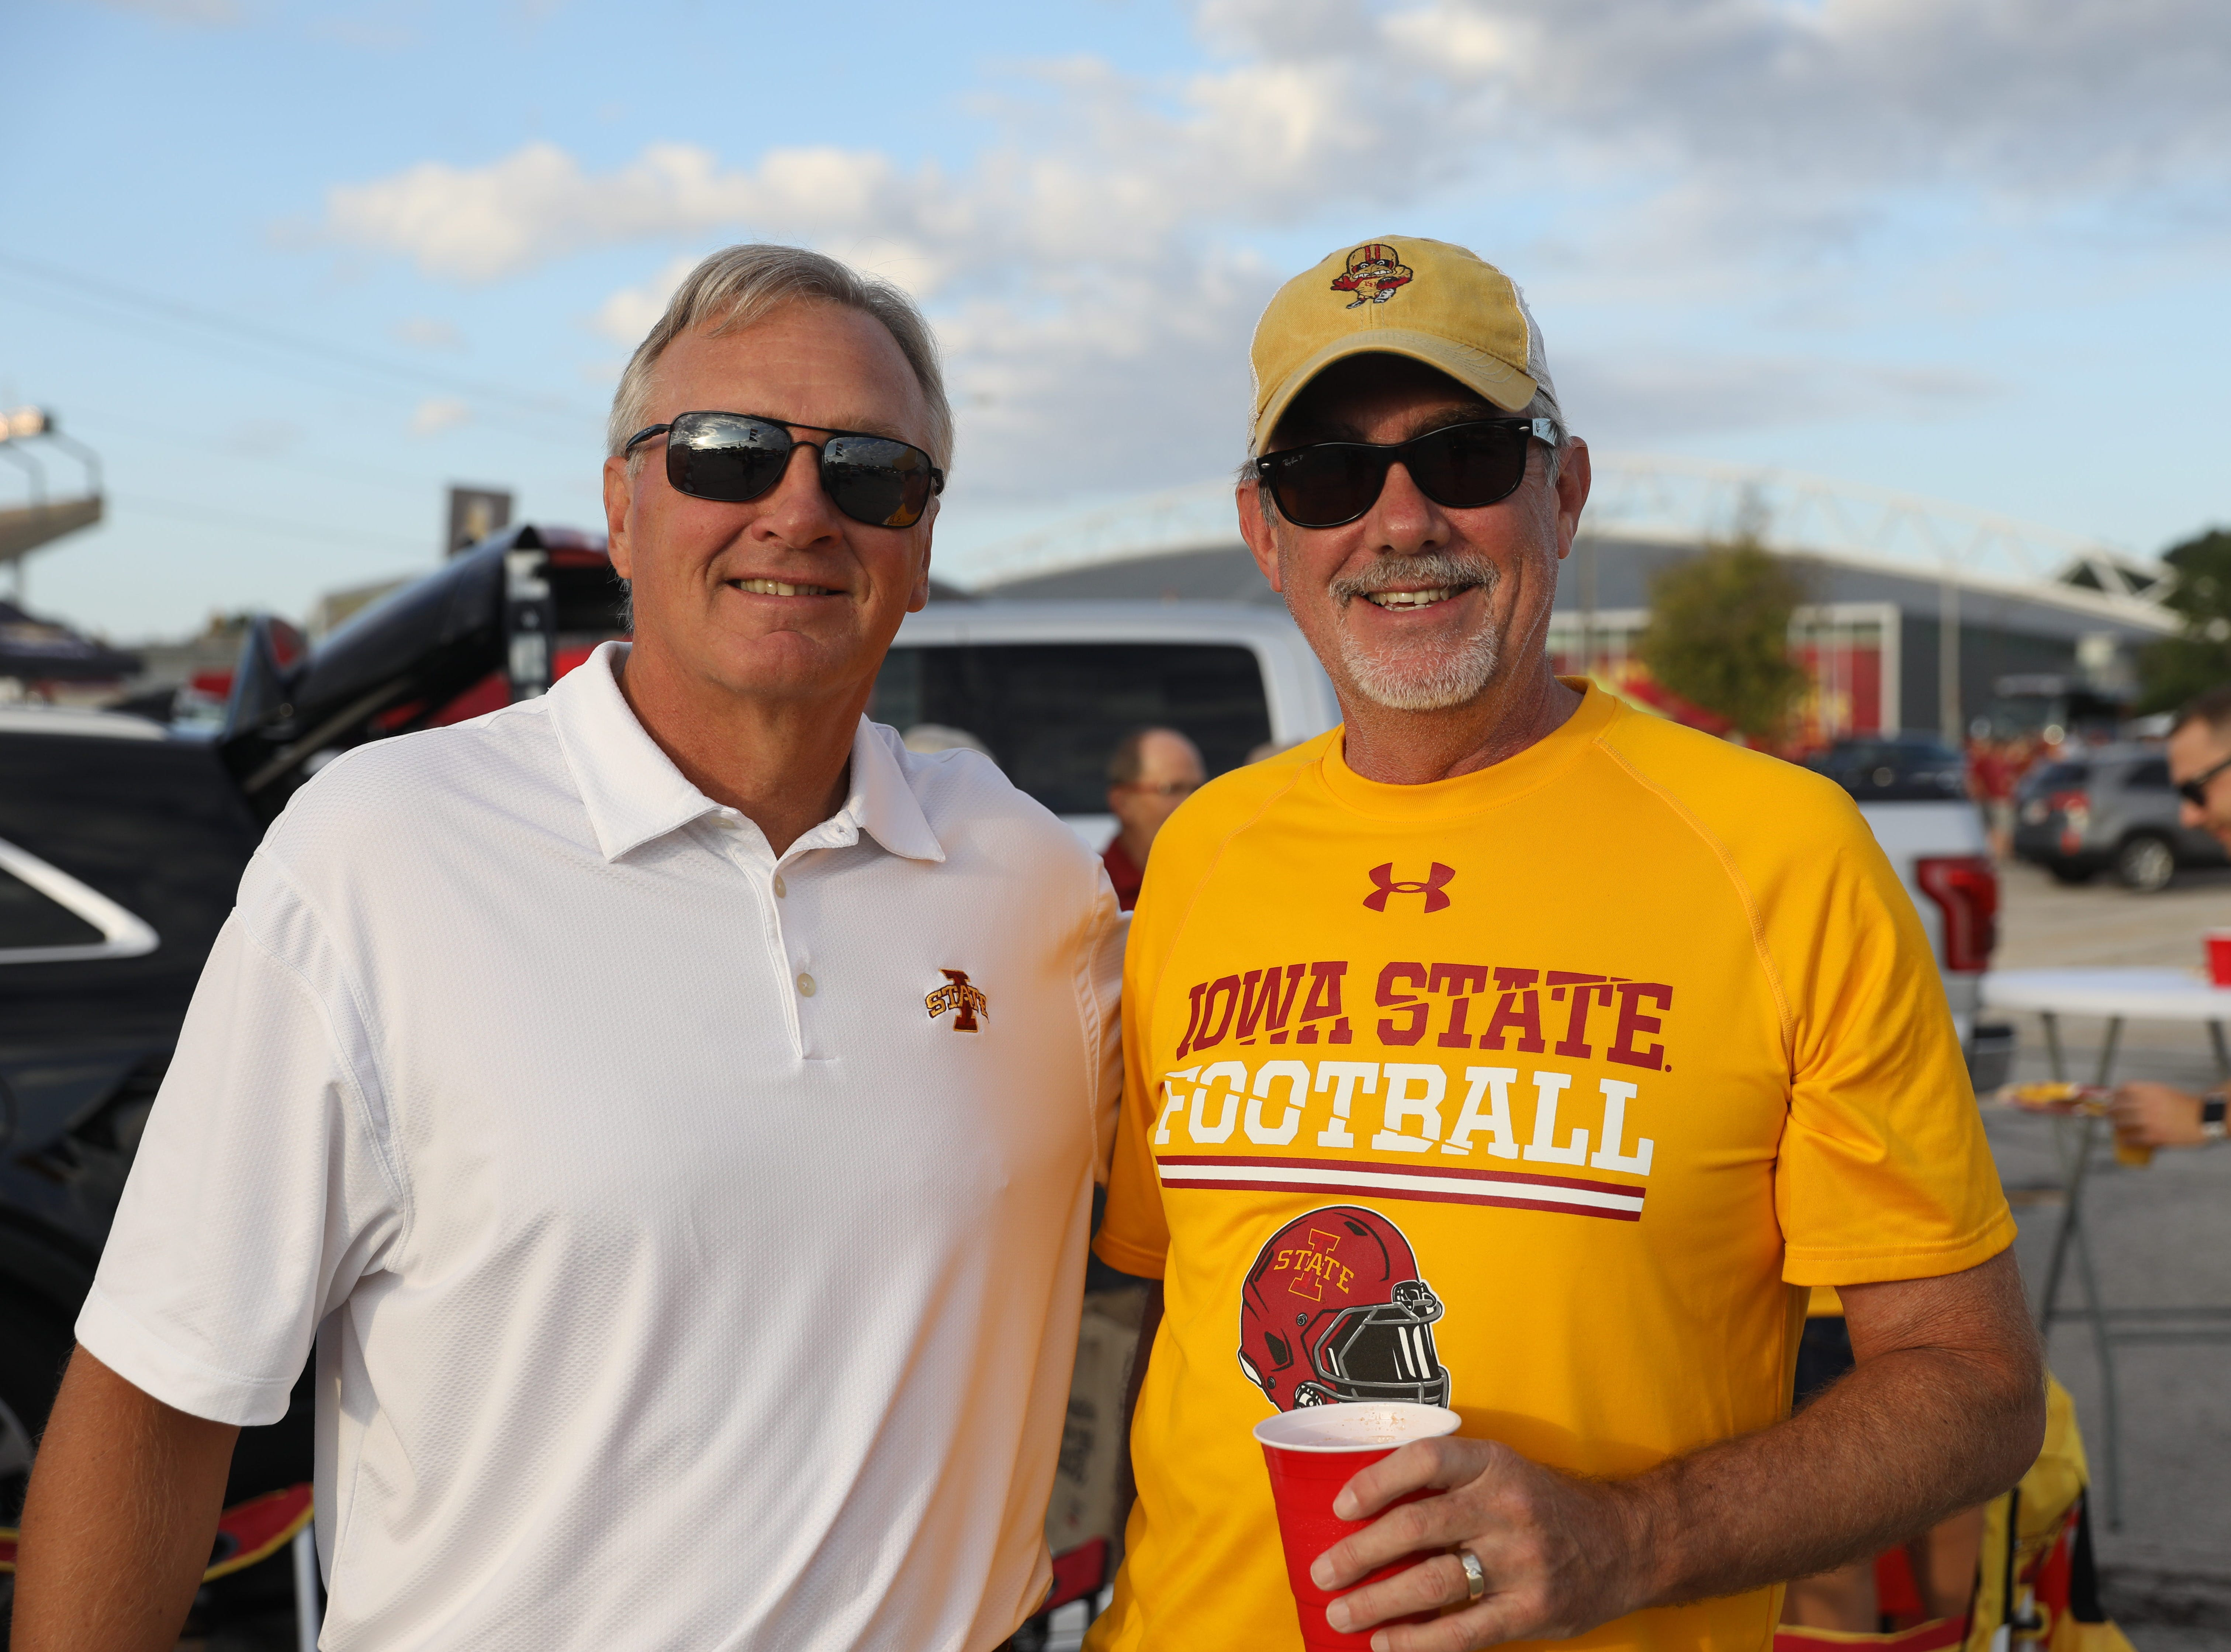 Craig Hansen (left) and Dave Green, both of Urbandale, Saturday, Sept. 15, 2018, before the Iowa State football game against Oklahoma in Ames.